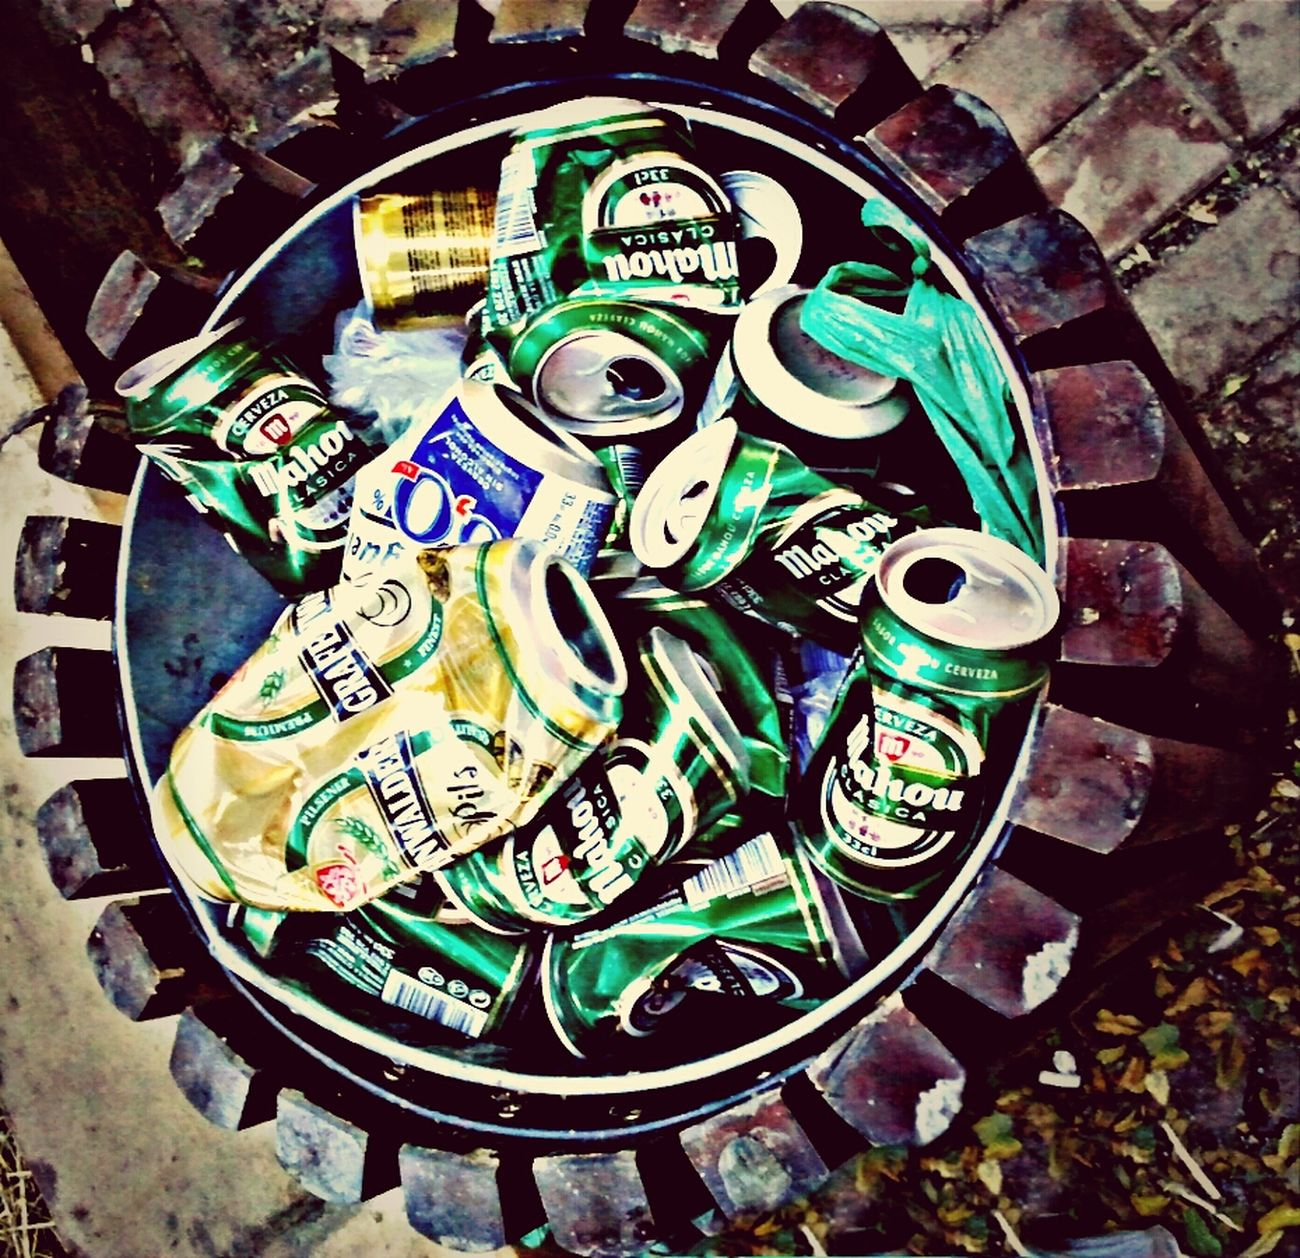 I was a little bit thirsty, sorry for not inviting Samsung Galaxy Camera Beerporn The Press - Trash Mahou